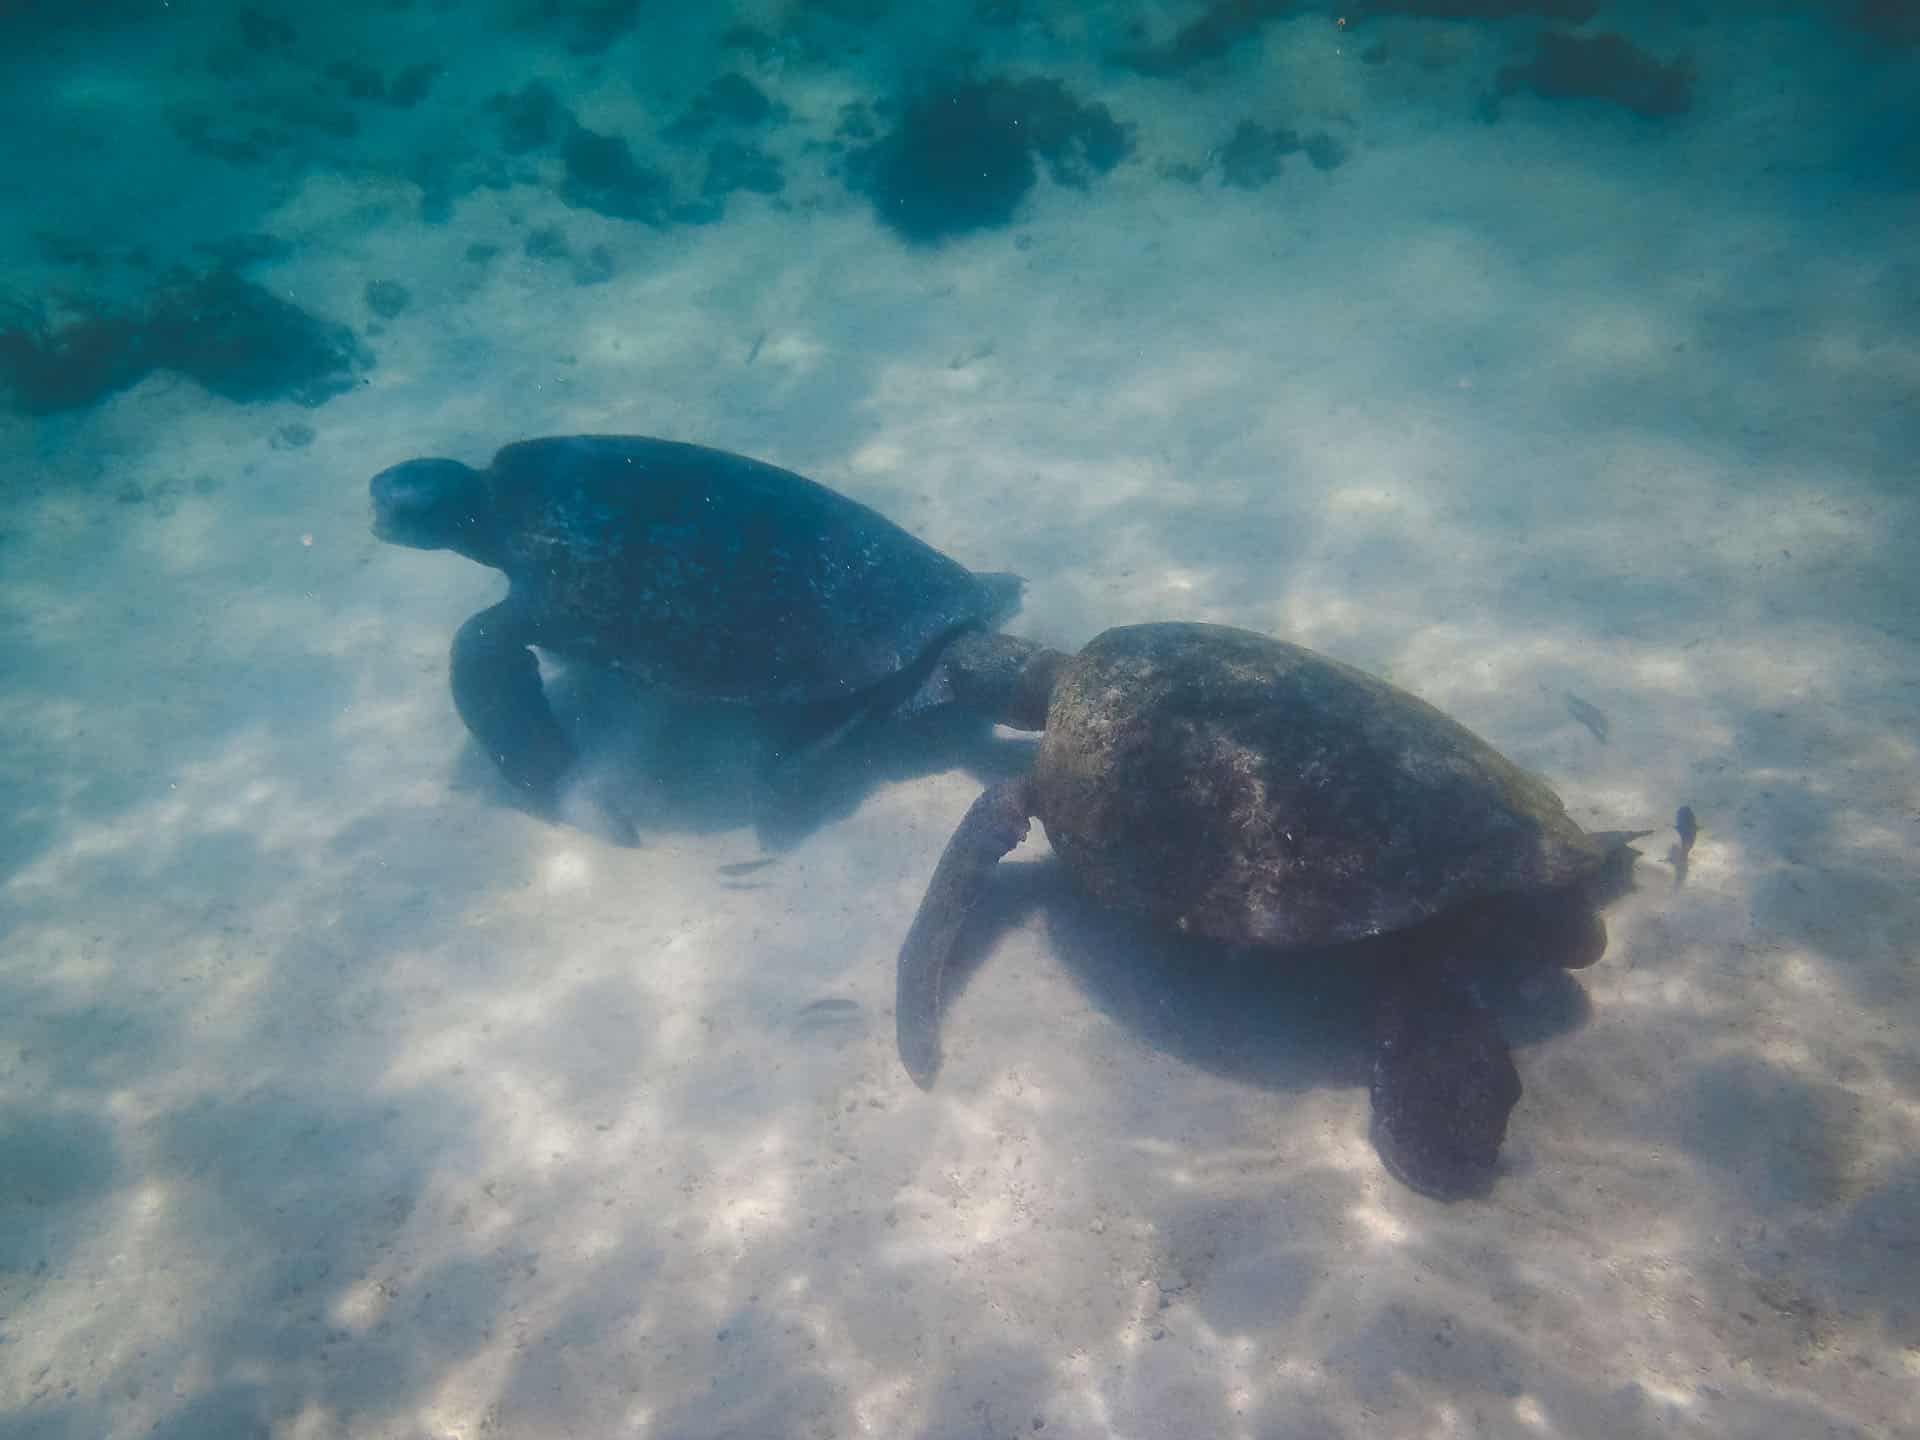 galapagos islands marinelife sea turtles